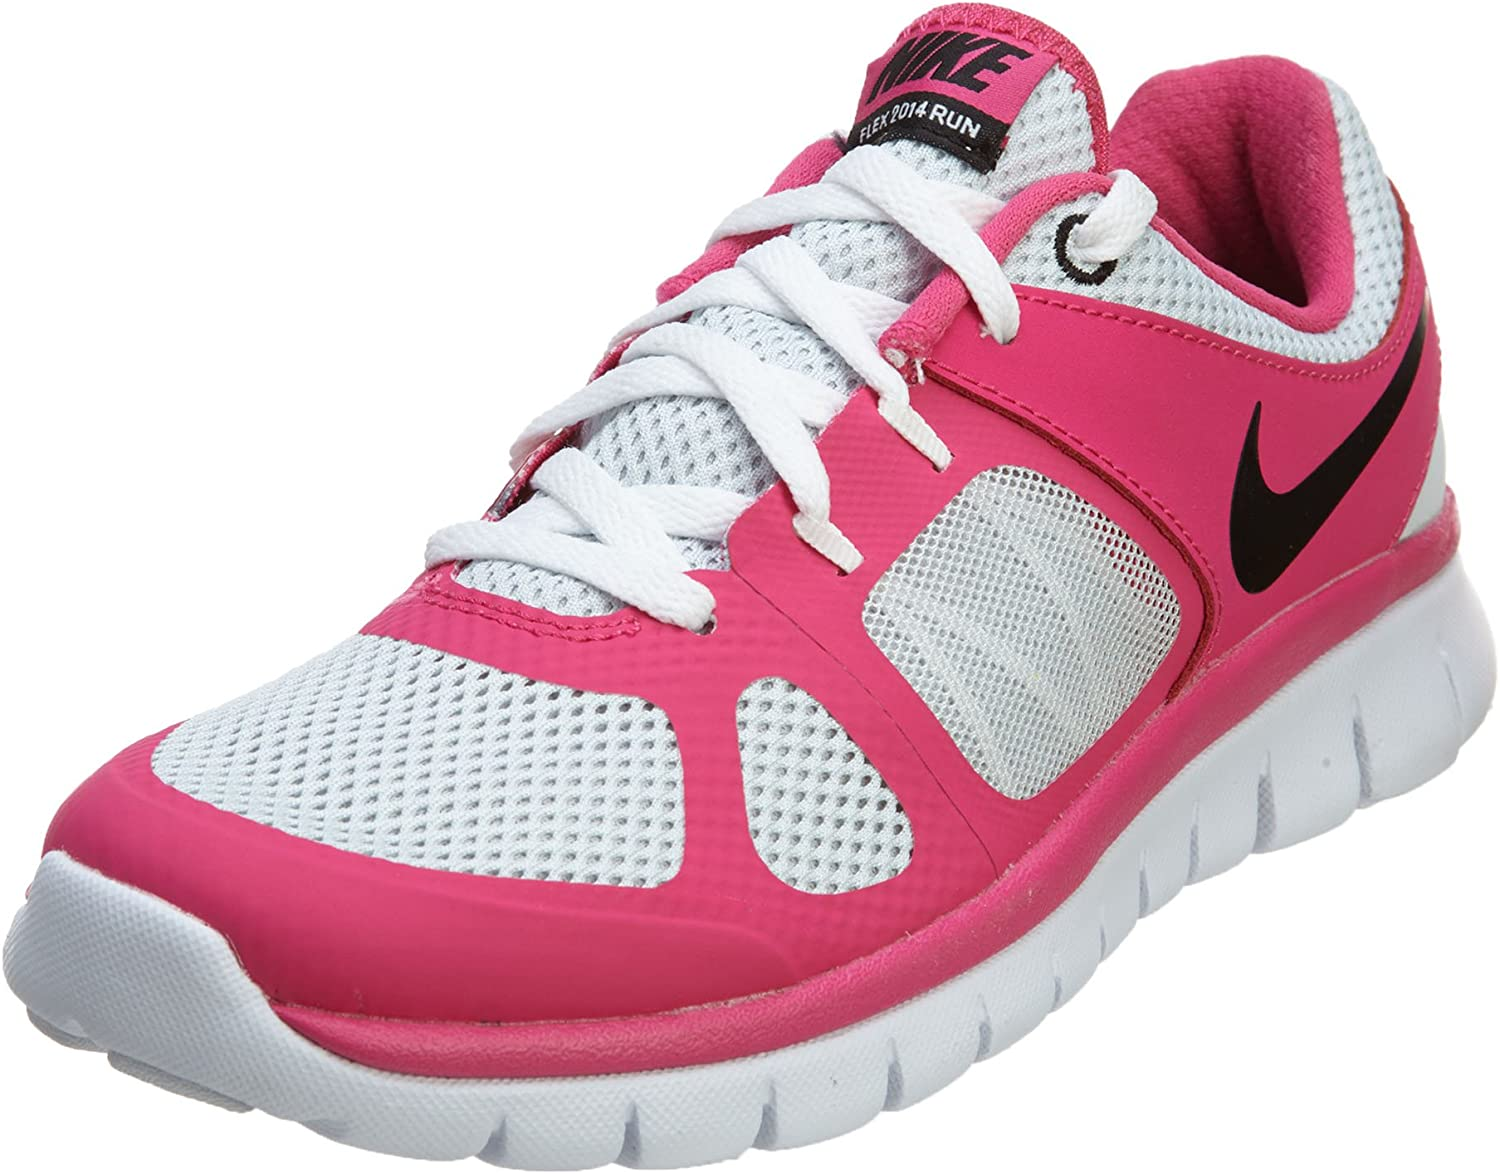 NIKE Flex 2014 RN, Zapatillas de Running para Bebés: Amazon.es ...